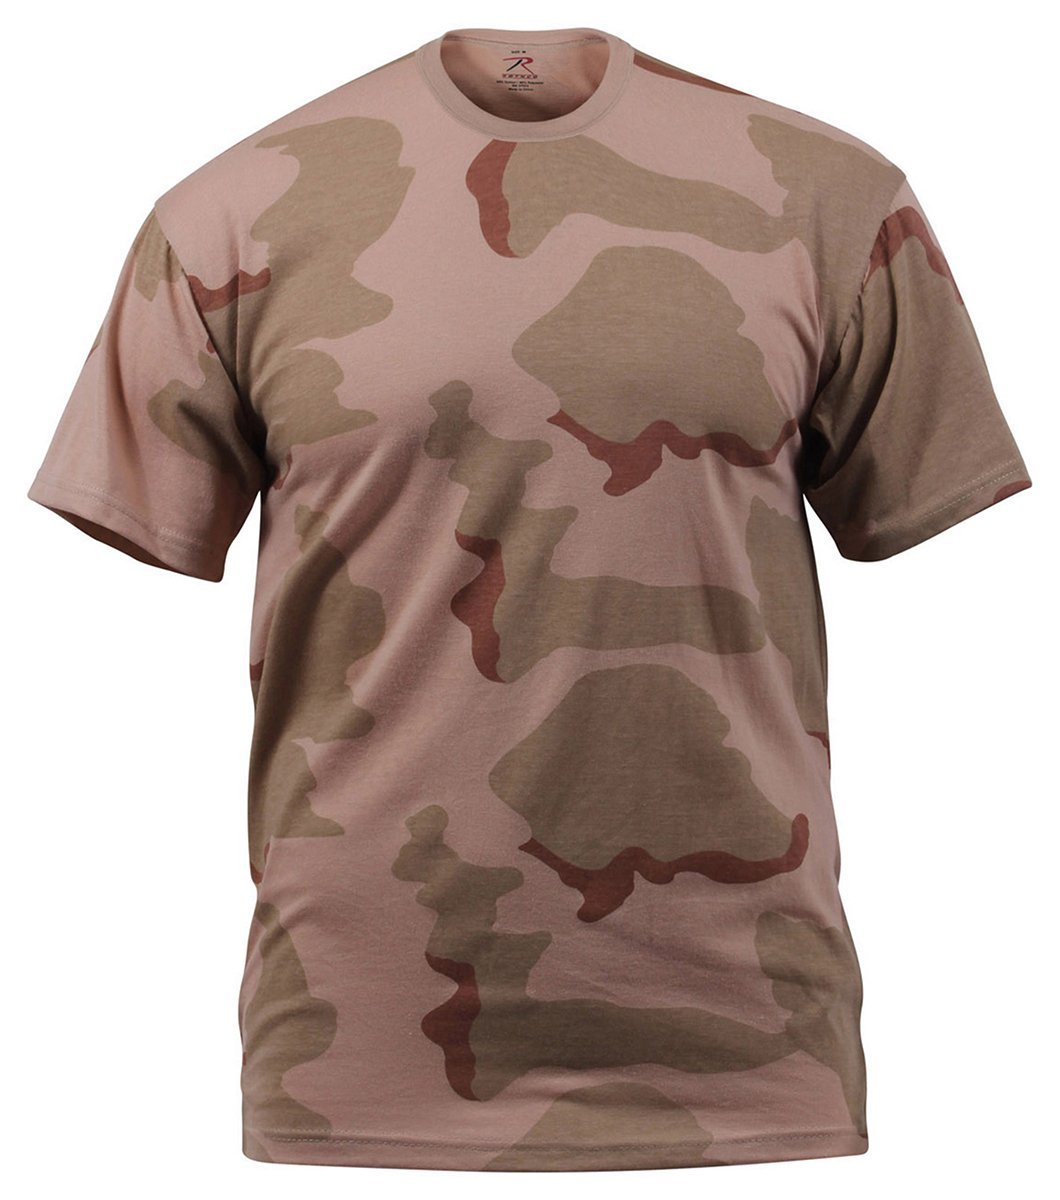 Mens 3 Color Desert Poly Cotton Camouflage T-Shirt - S